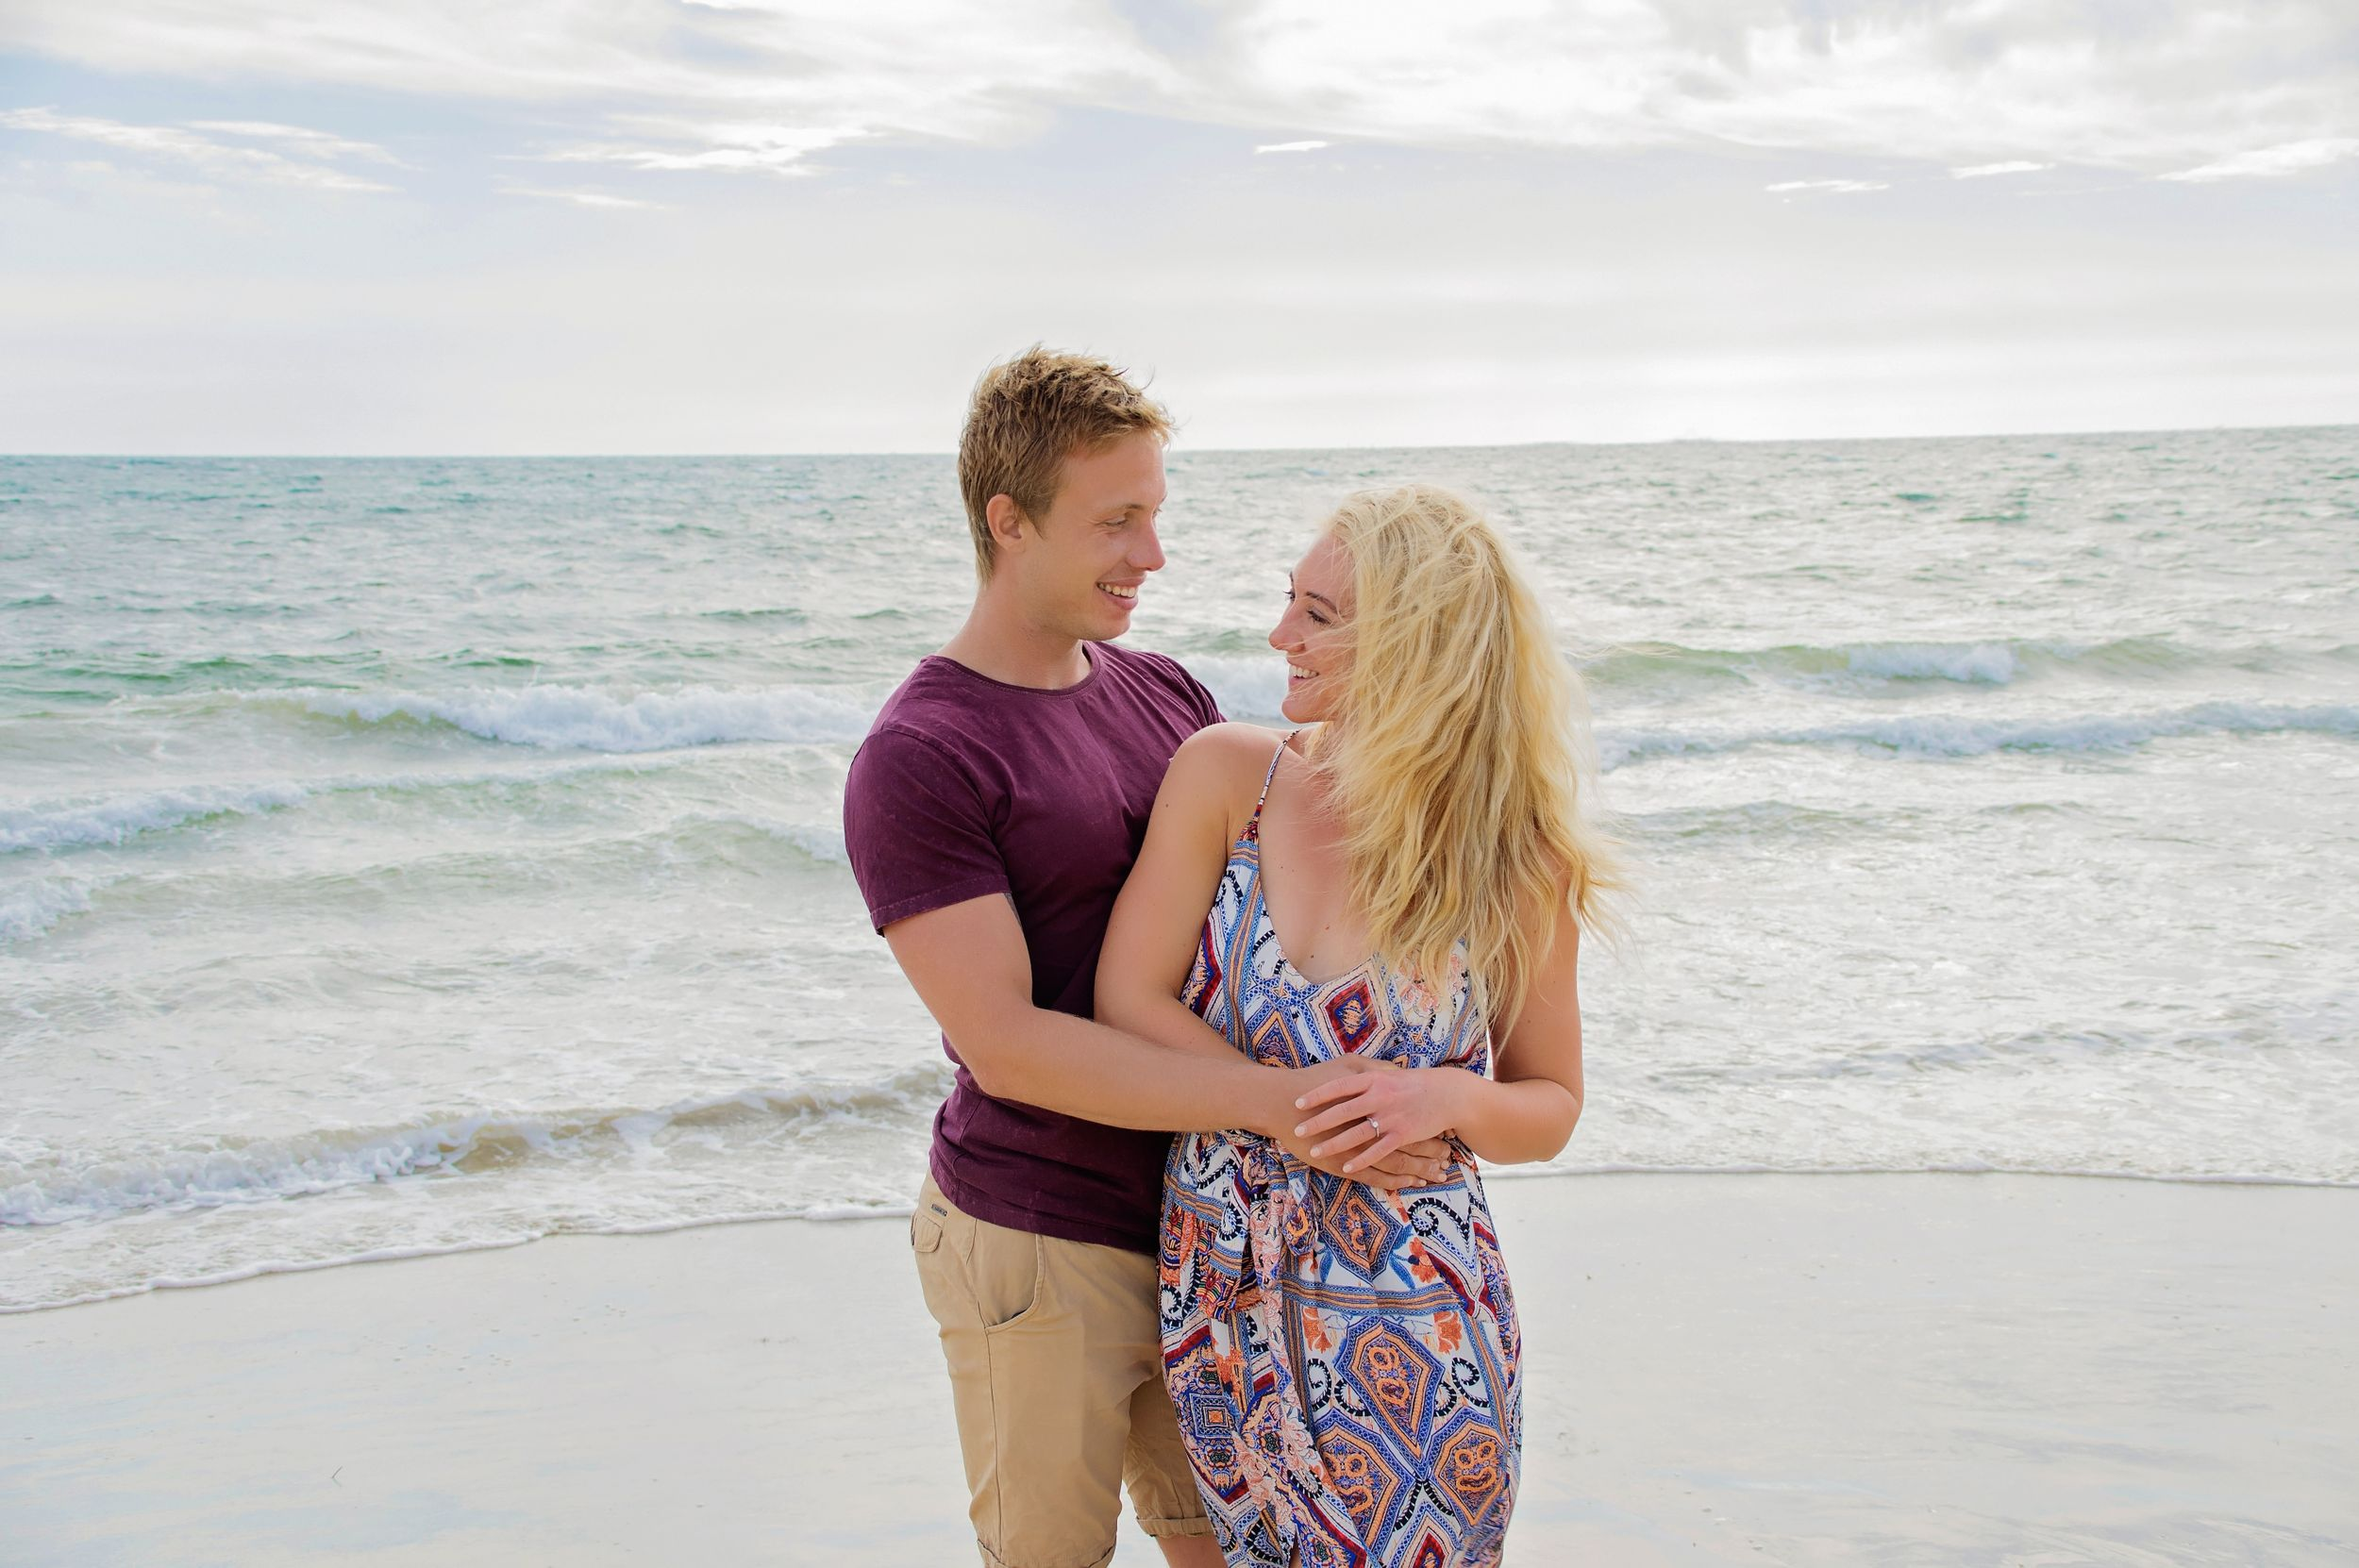 couple embracing on beach smiling